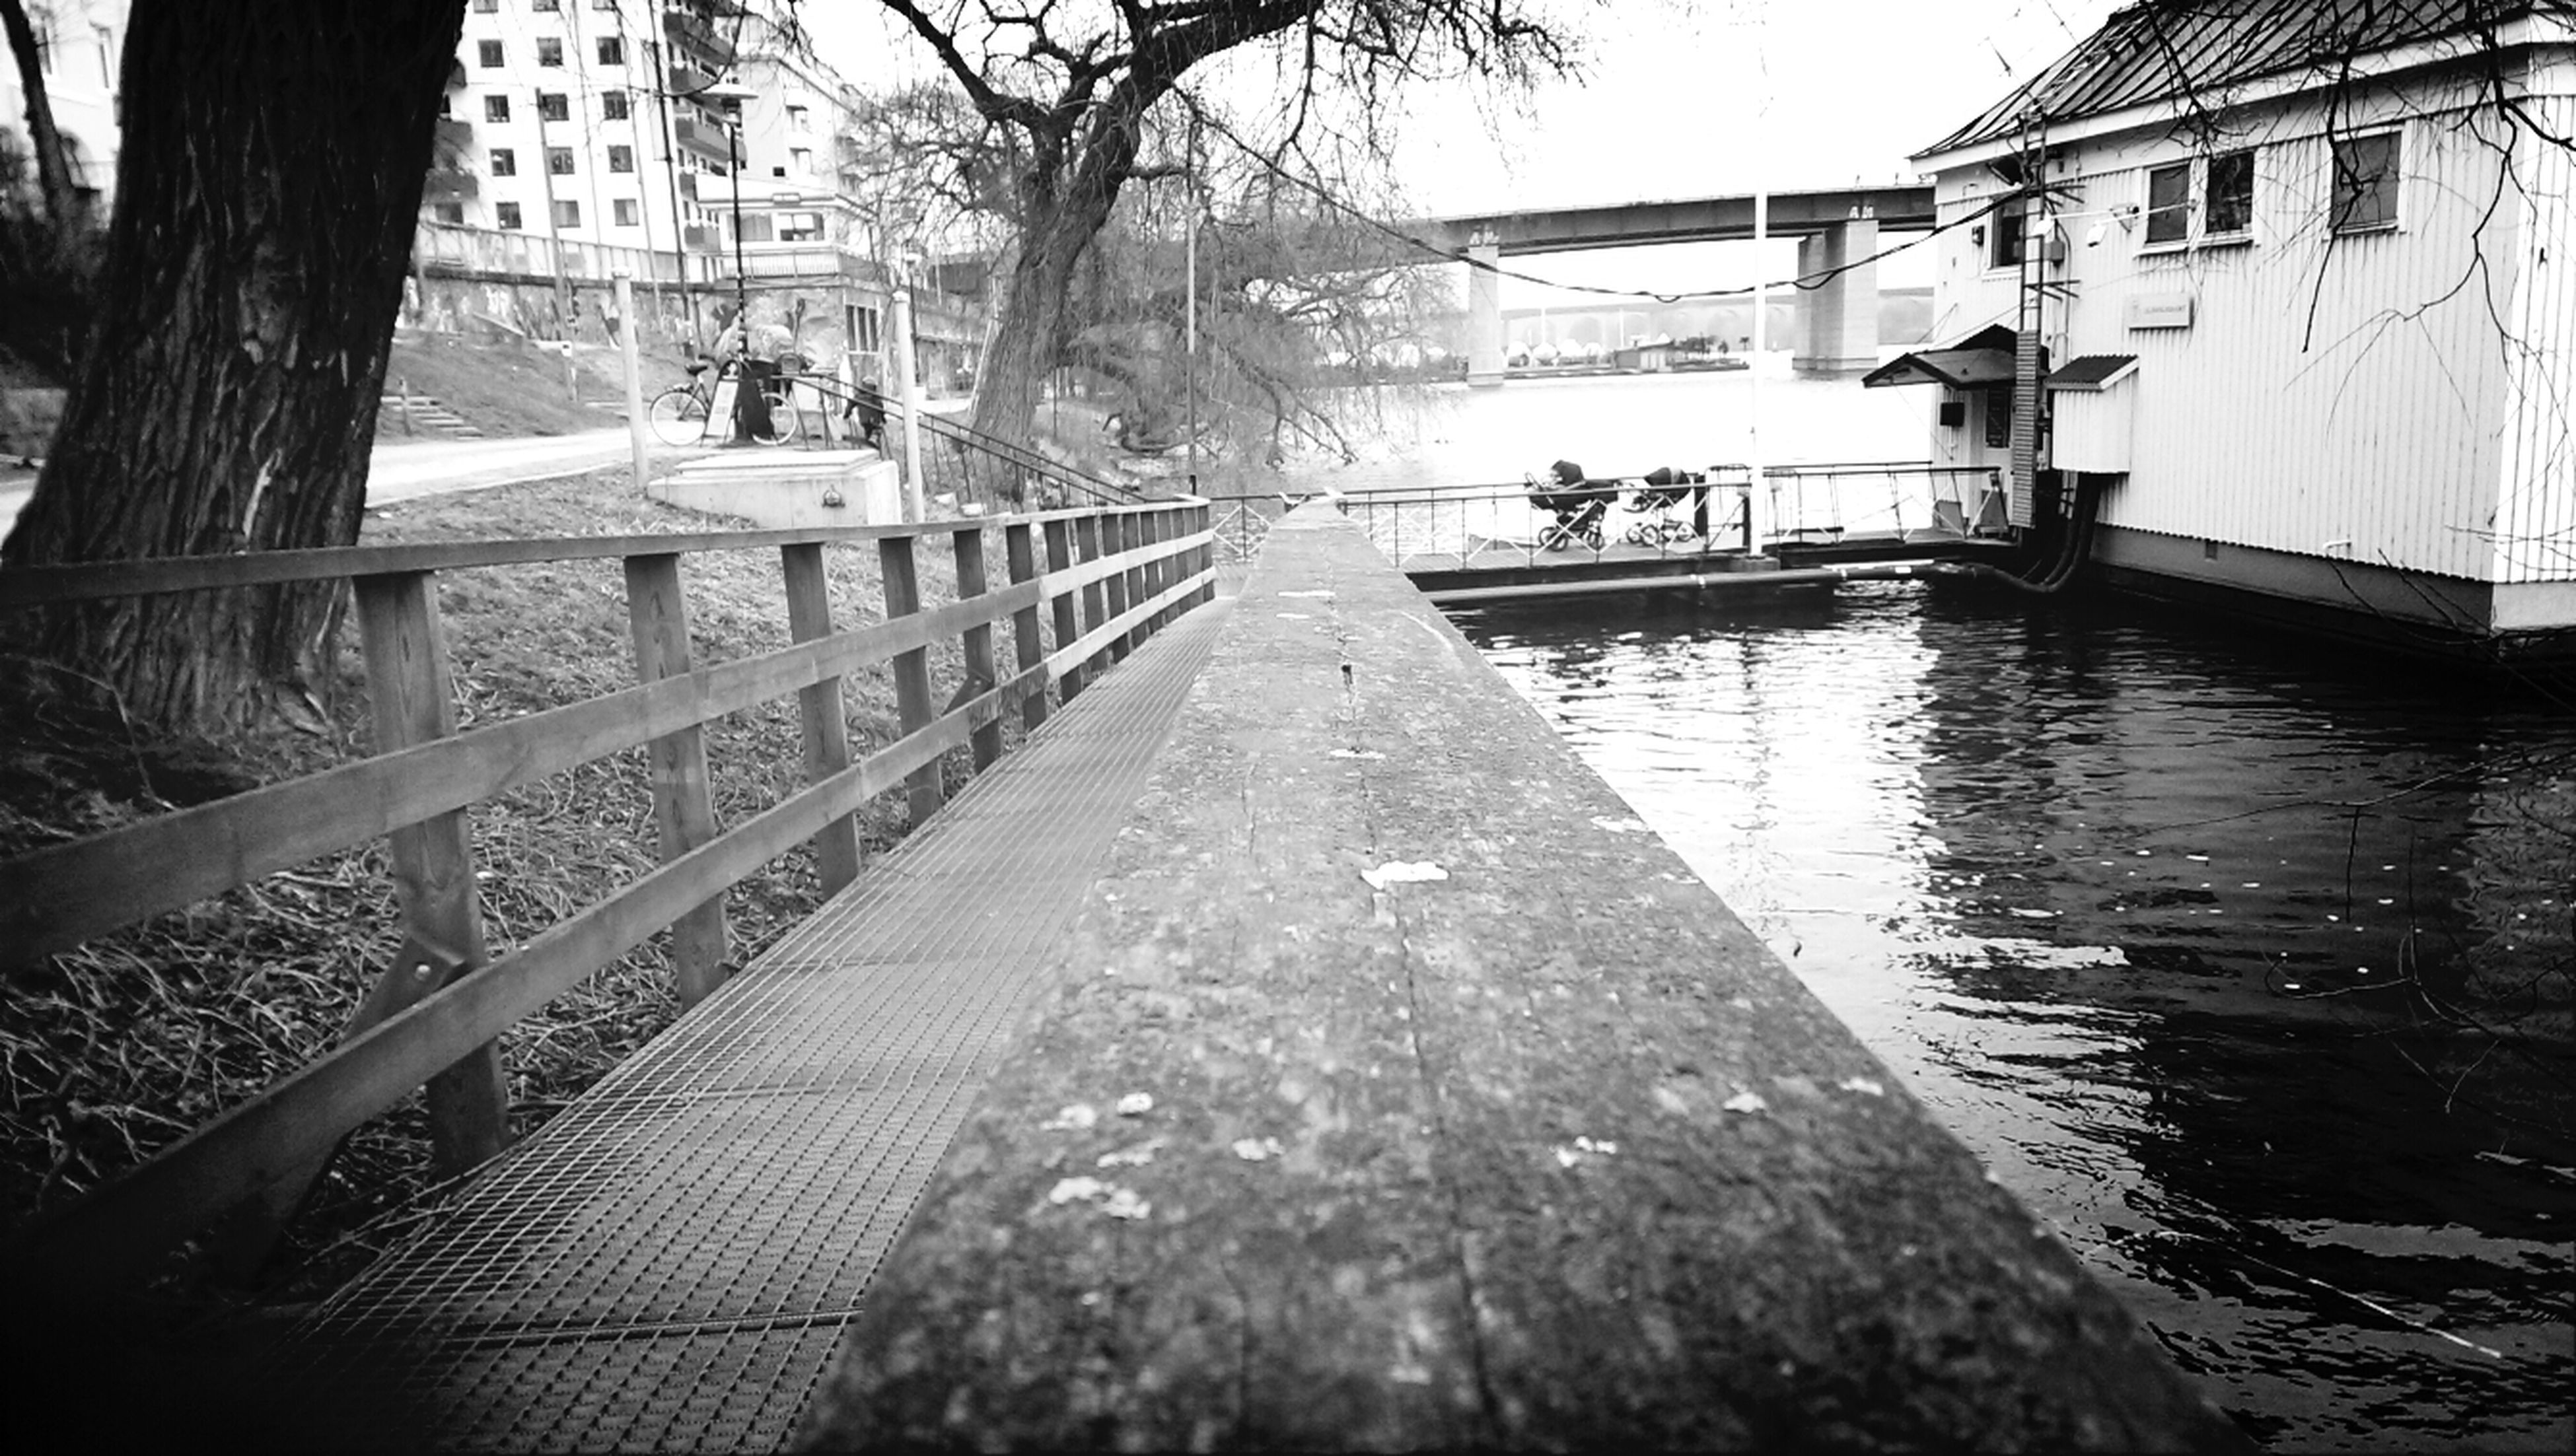 architecture, built structure, building exterior, water, the way forward, diminishing perspective, tree, canal, railing, city, vanishing point, connection, footbridge, incidental people, bridge - man made structure, day, outdoors, transportation, river, residential building